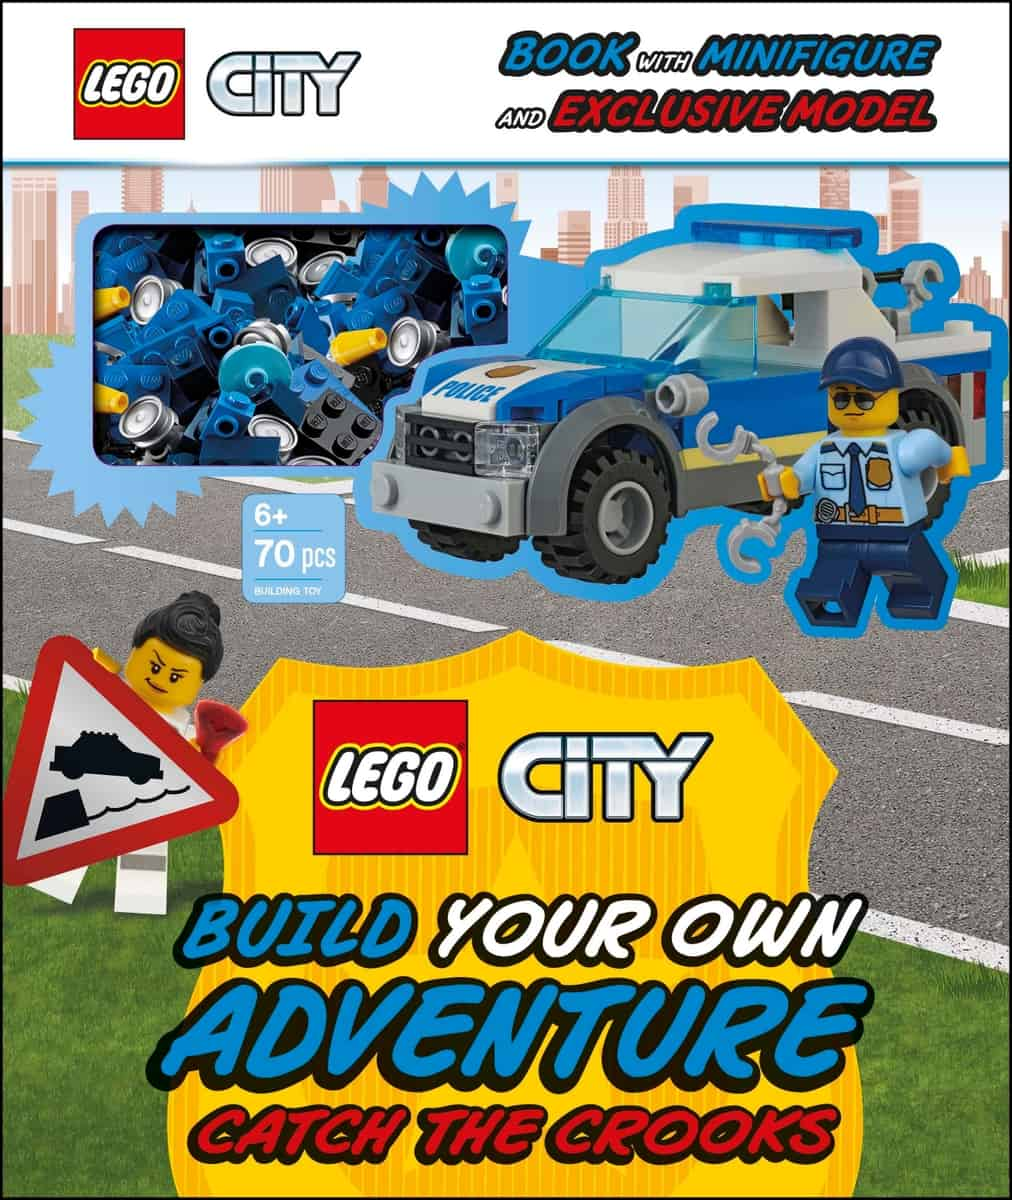 lego 5006882 build your own adventure catch the crooks